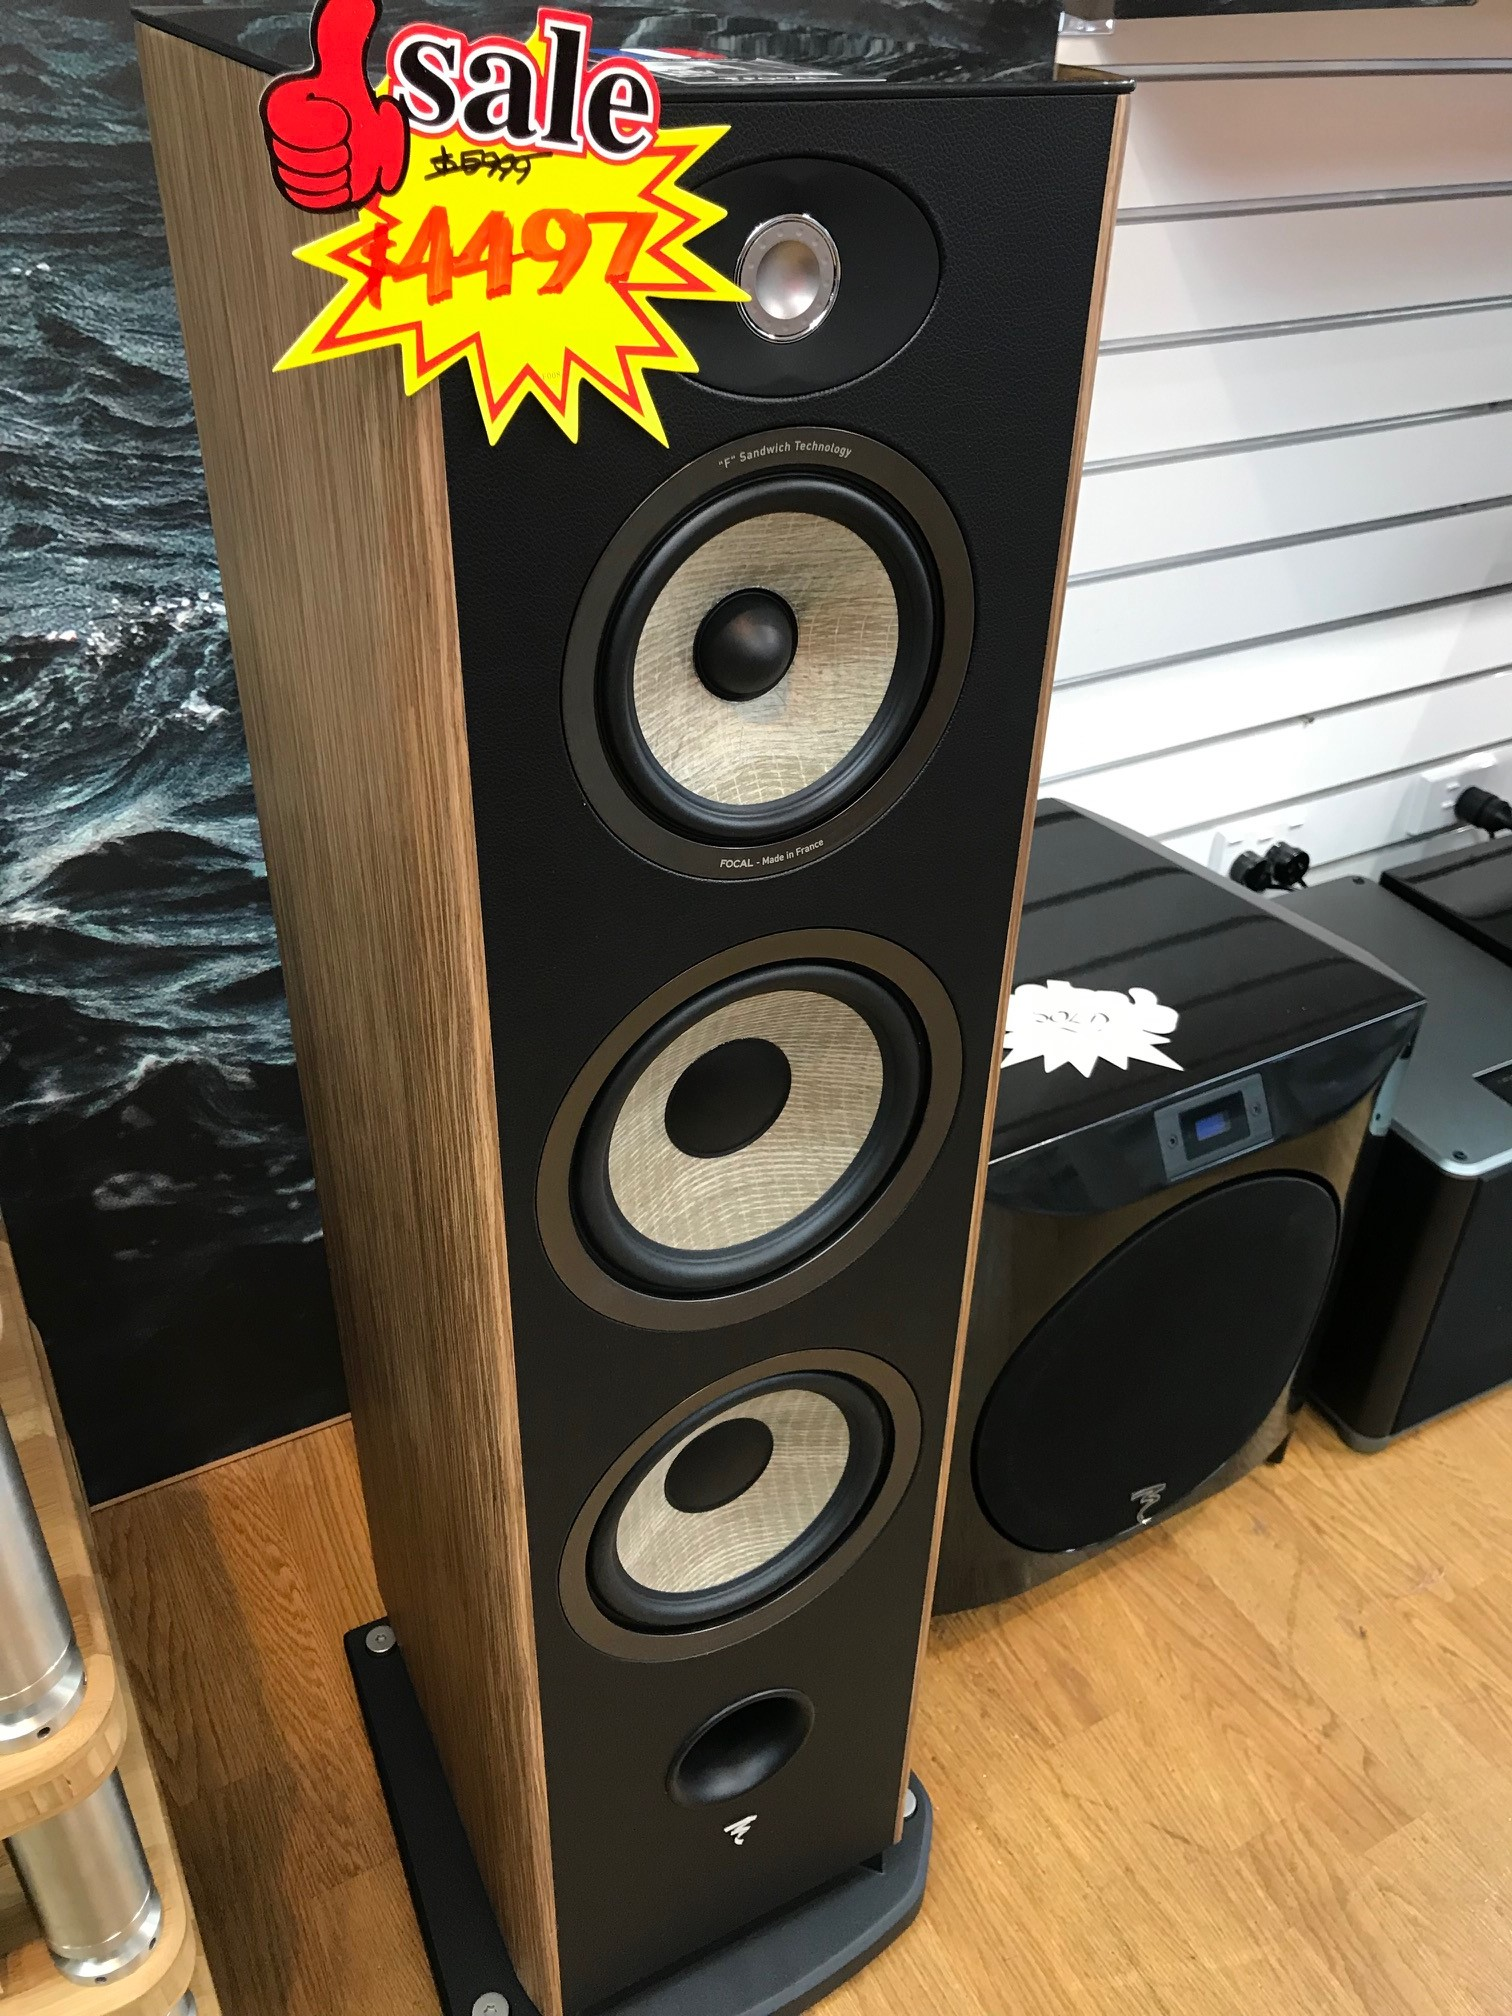 Focal Aria 948 Prime Walnut one only Special $4497